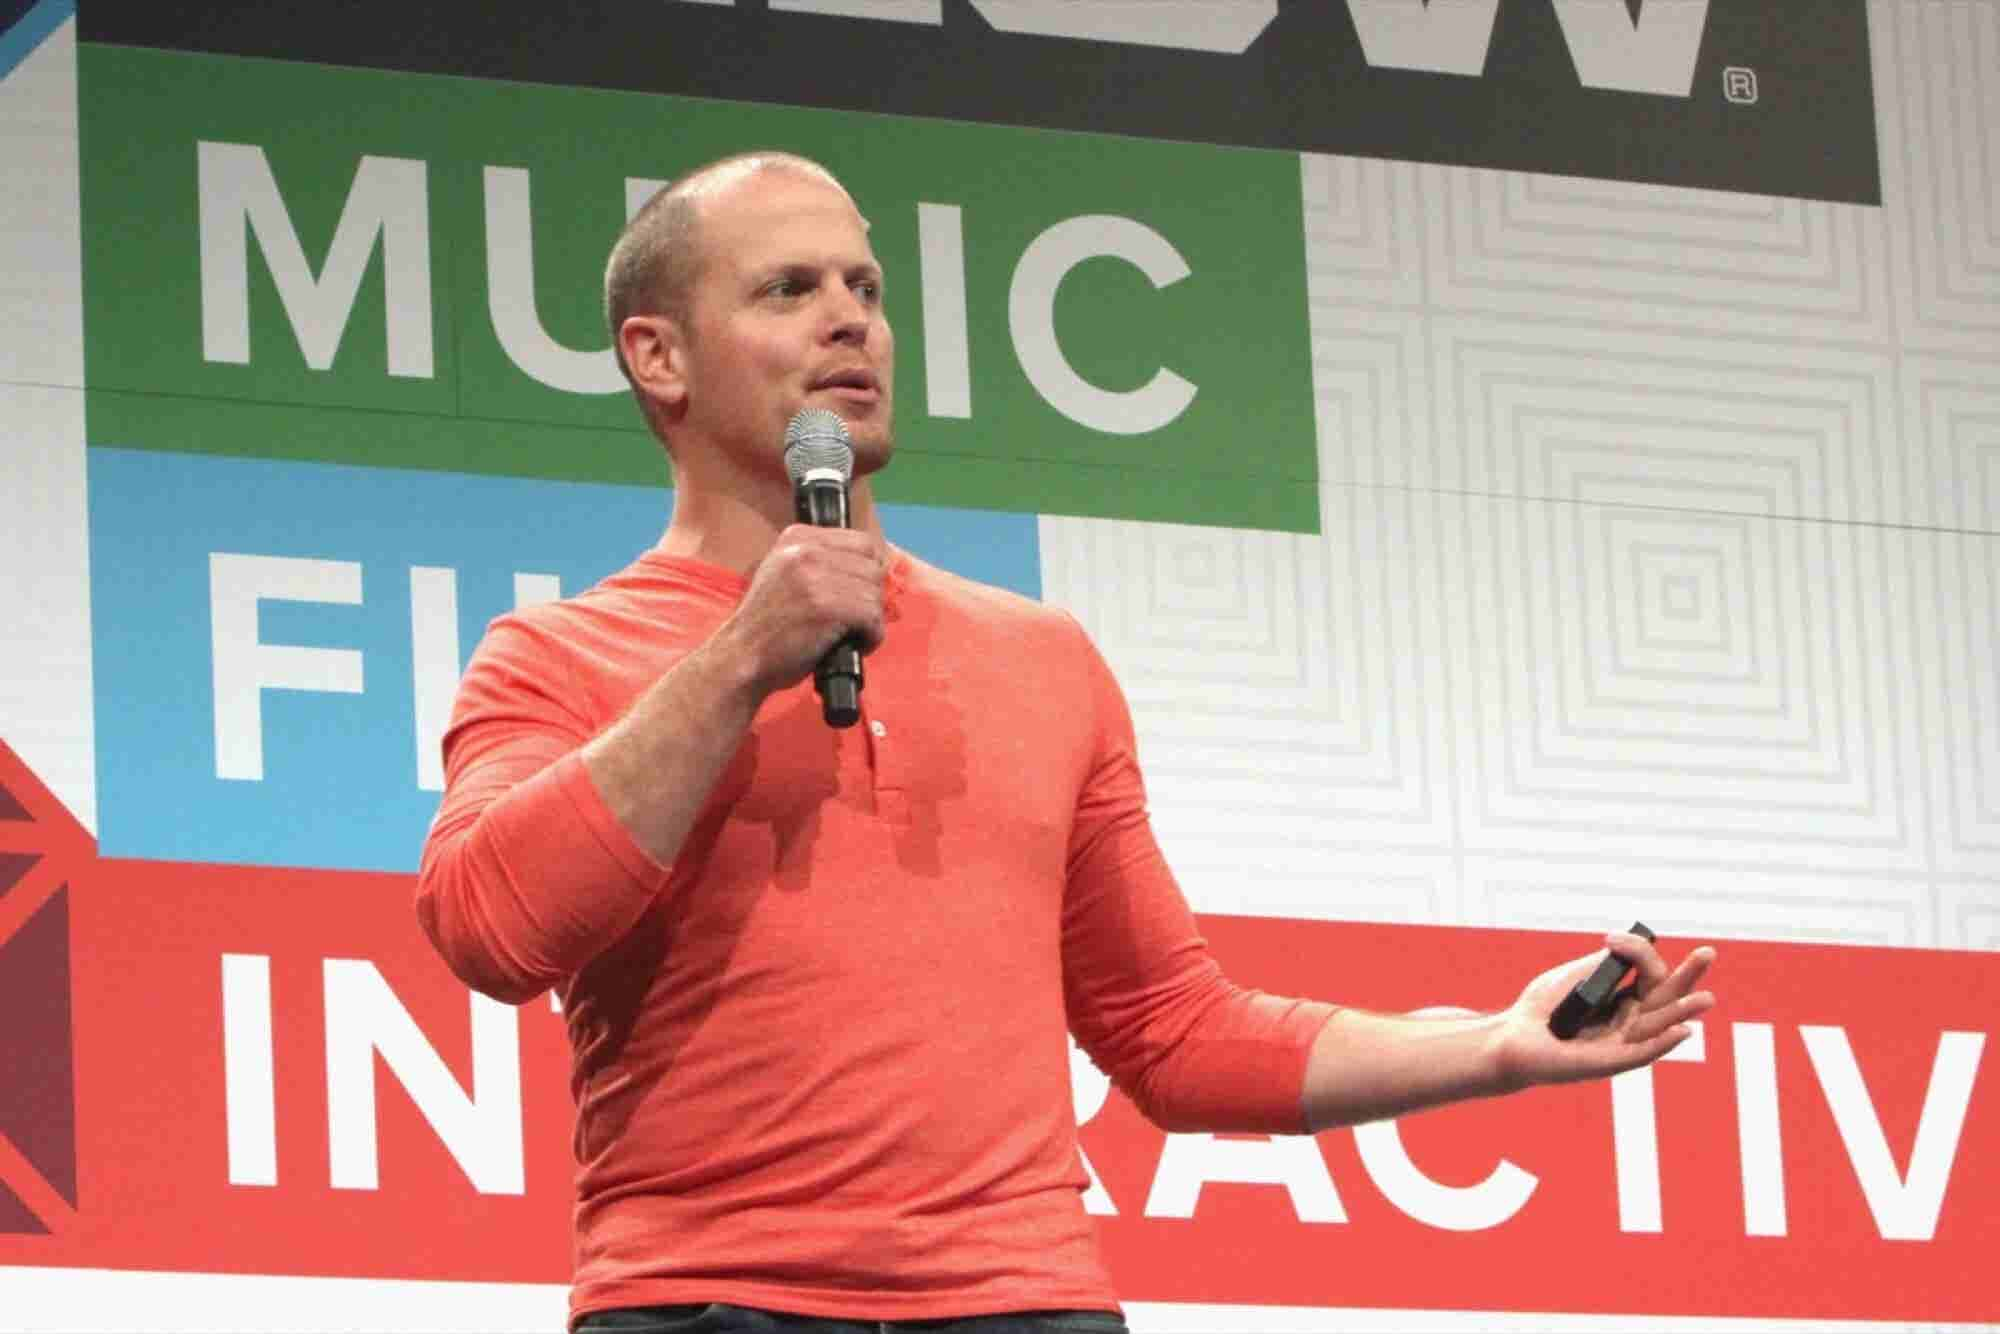 3 Lessons From Tim Ferriss About Avoiding Burnout